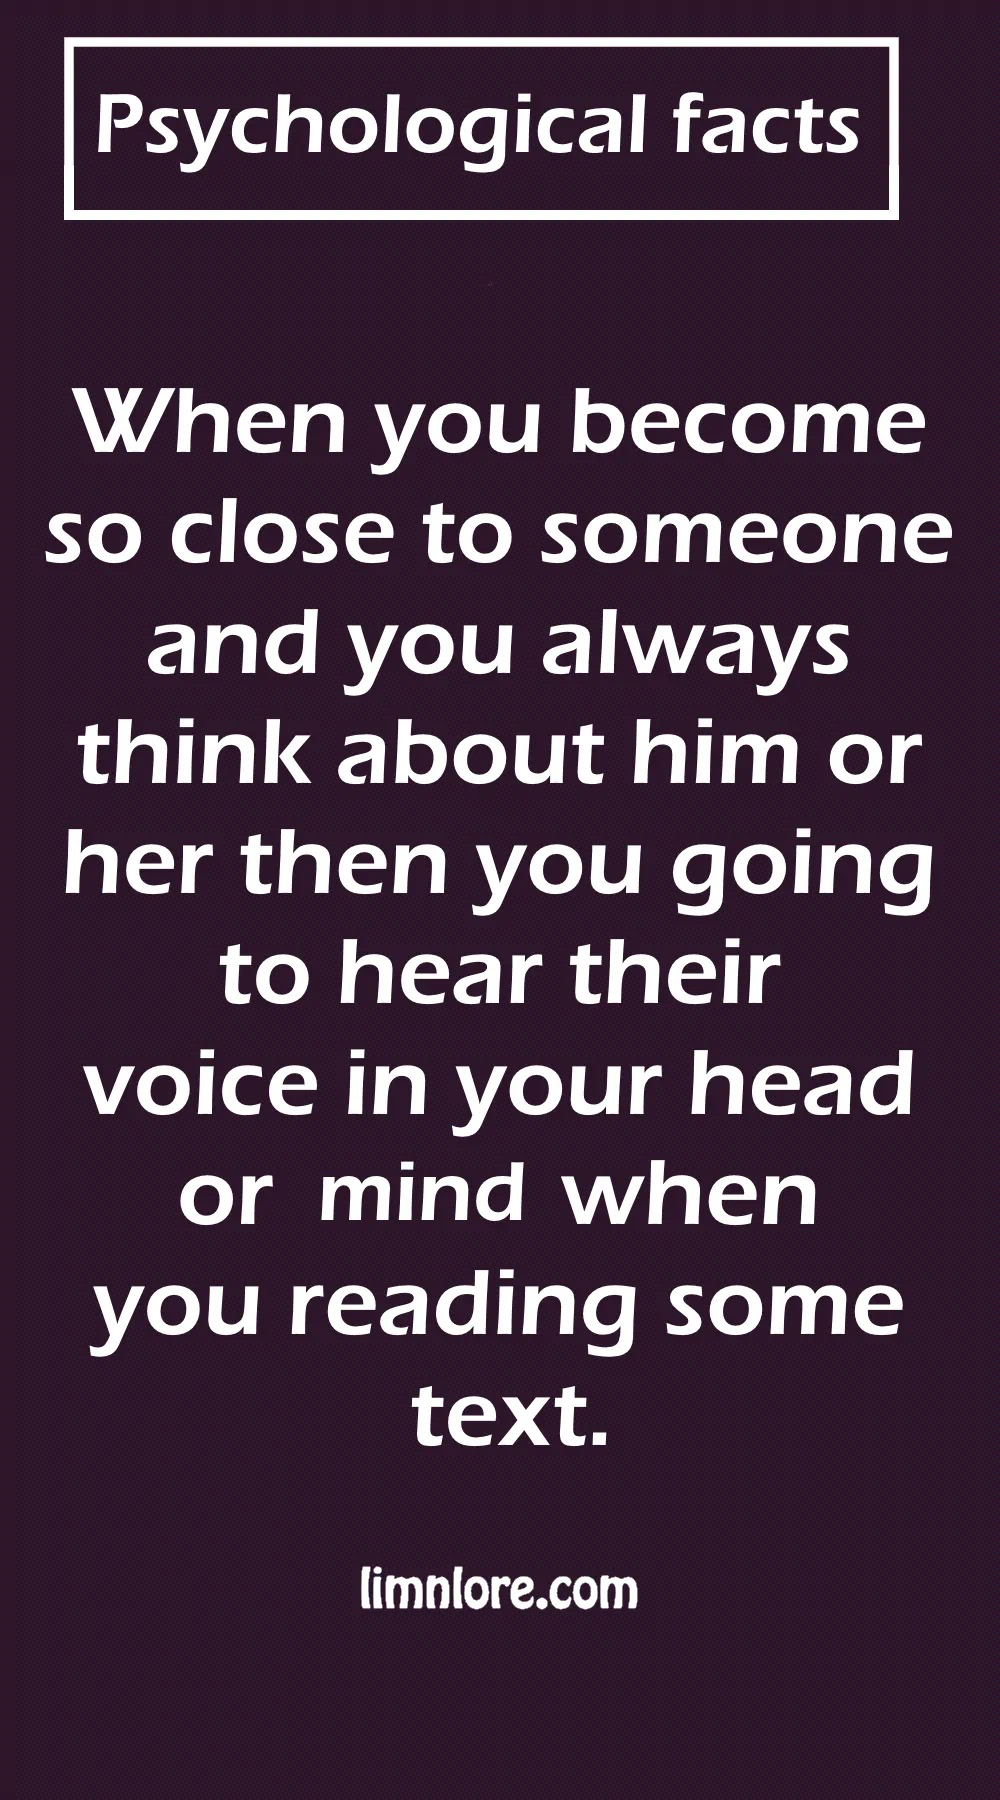 You going to hear voice of your close person in your mind psychological facts